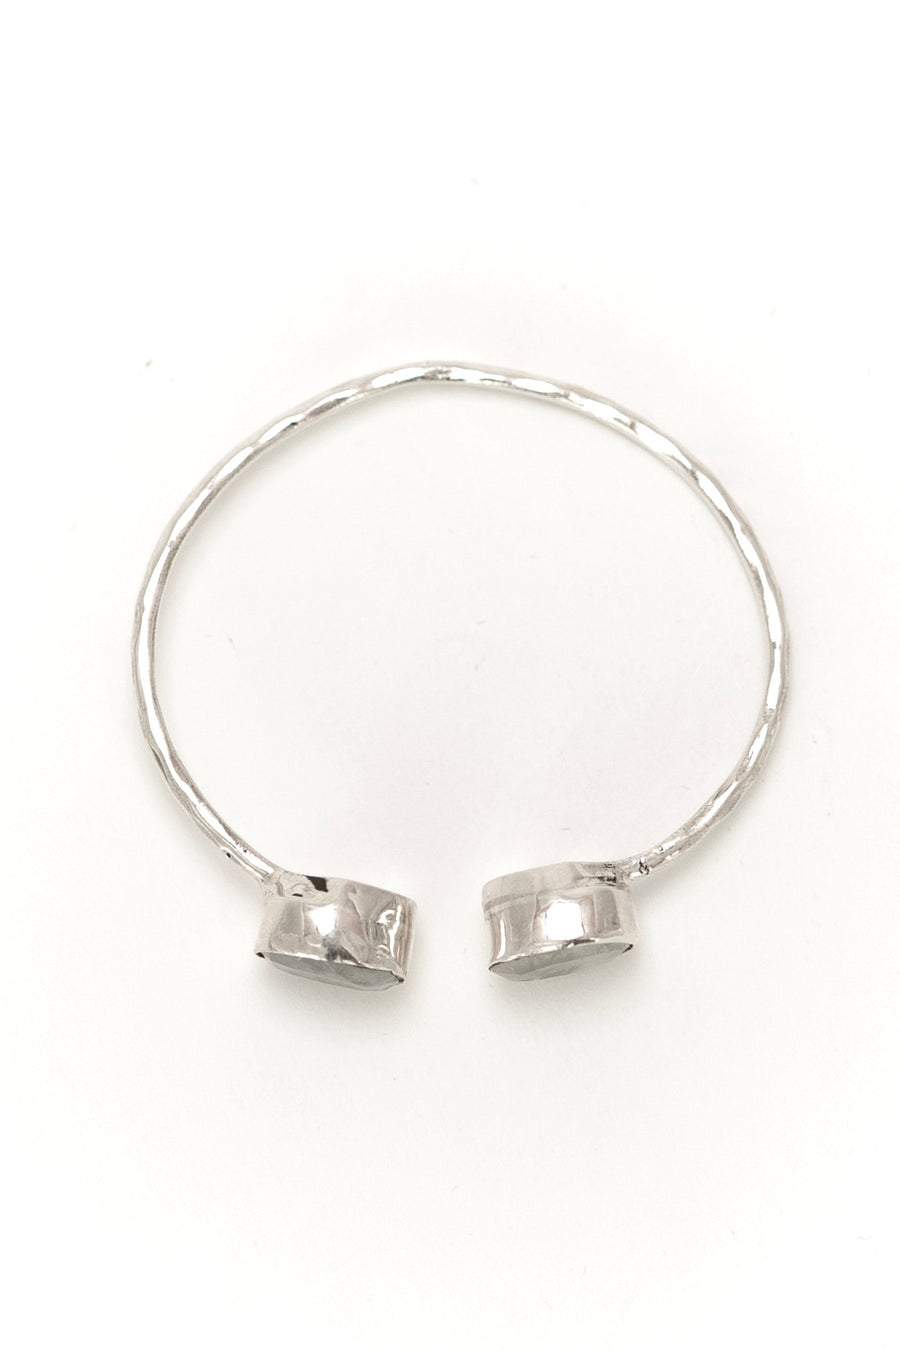 Morro Bay Bangle - Sterling Silver